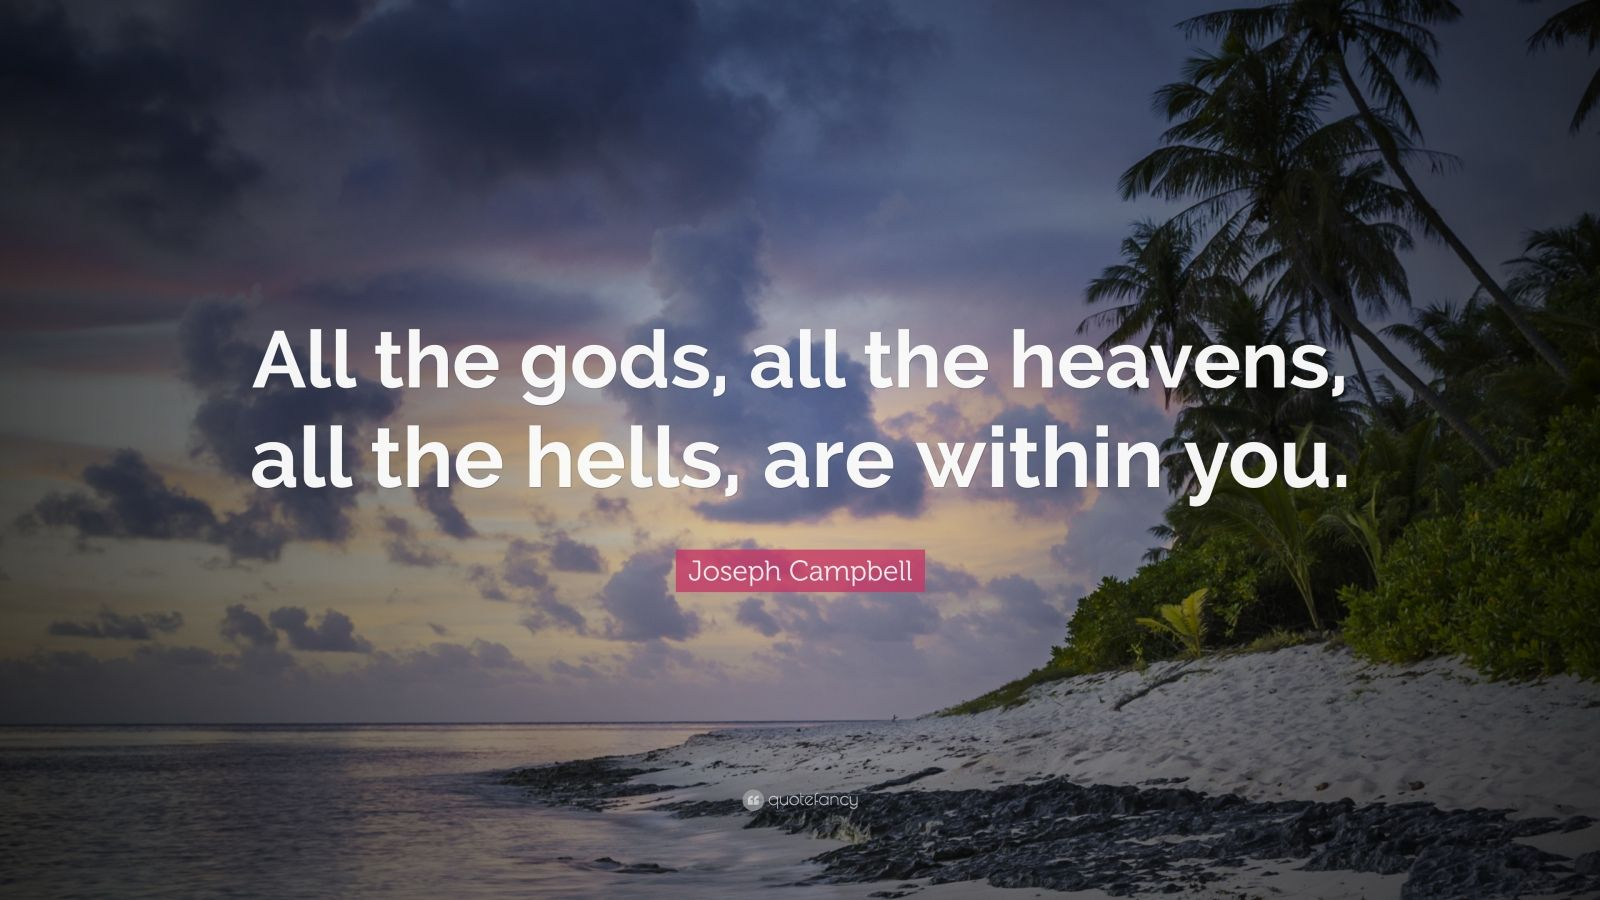 Dalai Lama Quotes Wallpapers Joseph Campbell Quote All The Gods All The Heavens All